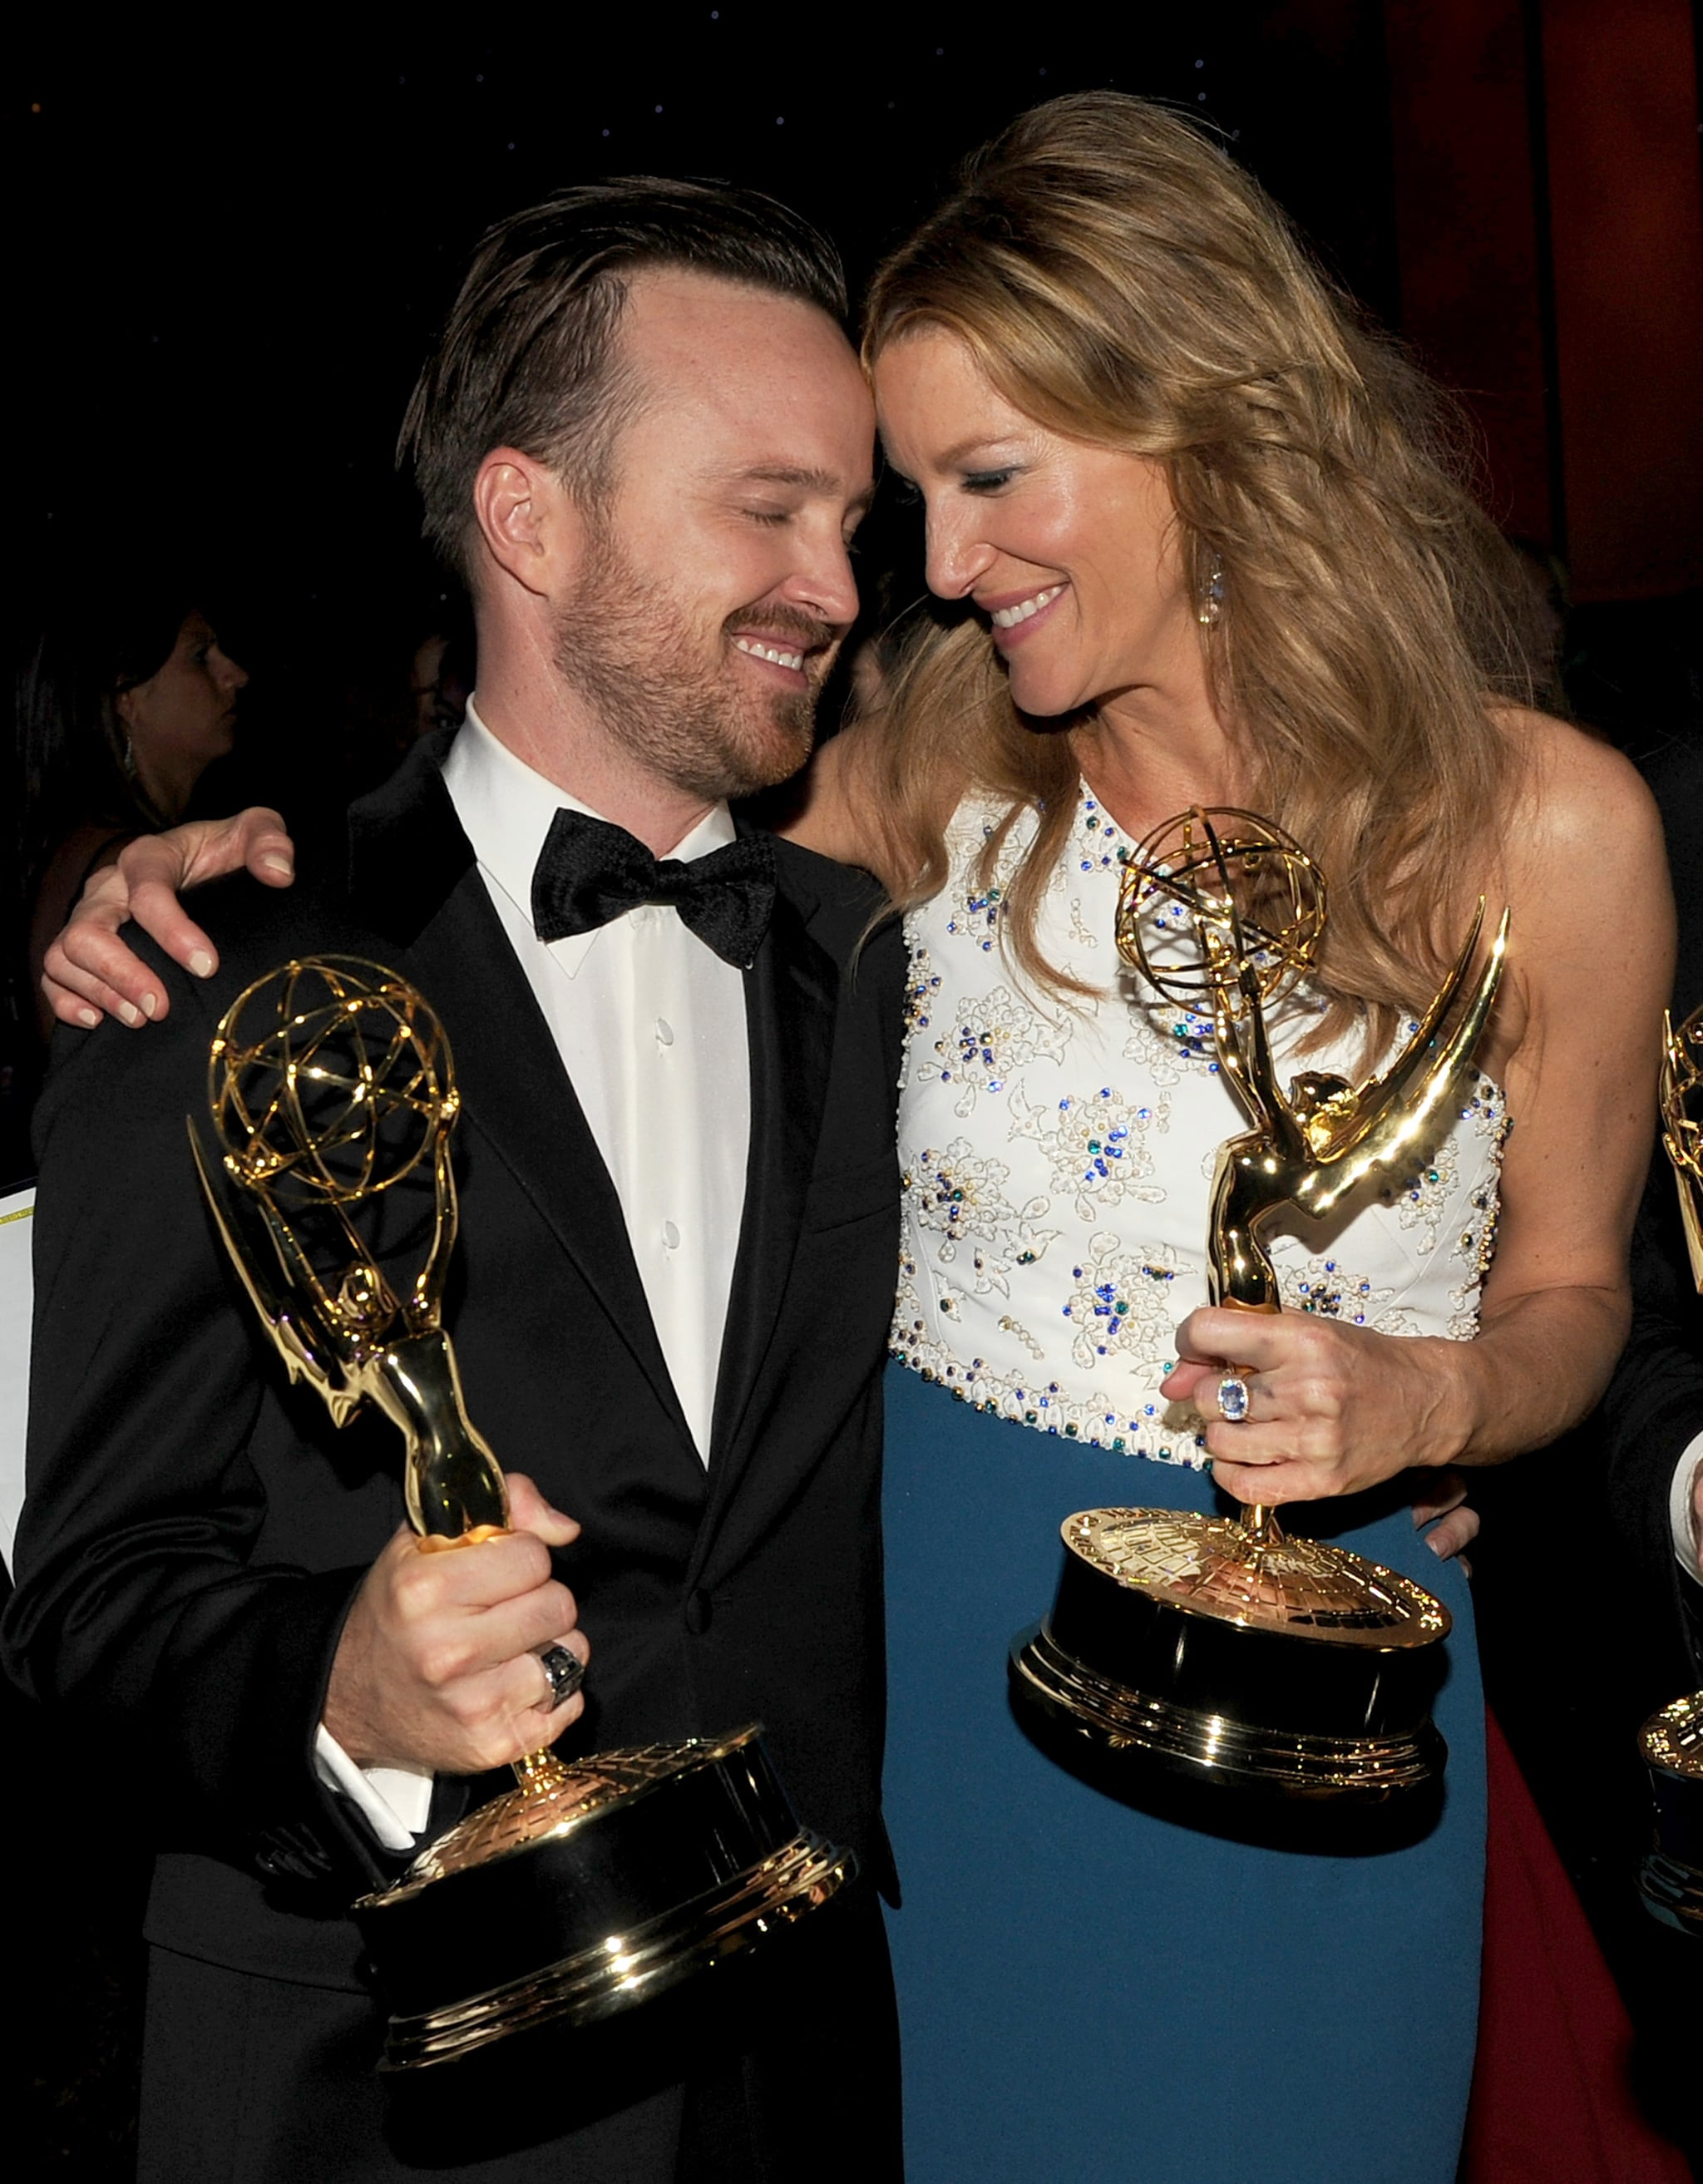 Aaron Paul and Anna Gunn held on to their trophies after winning big for Breaking Bad.